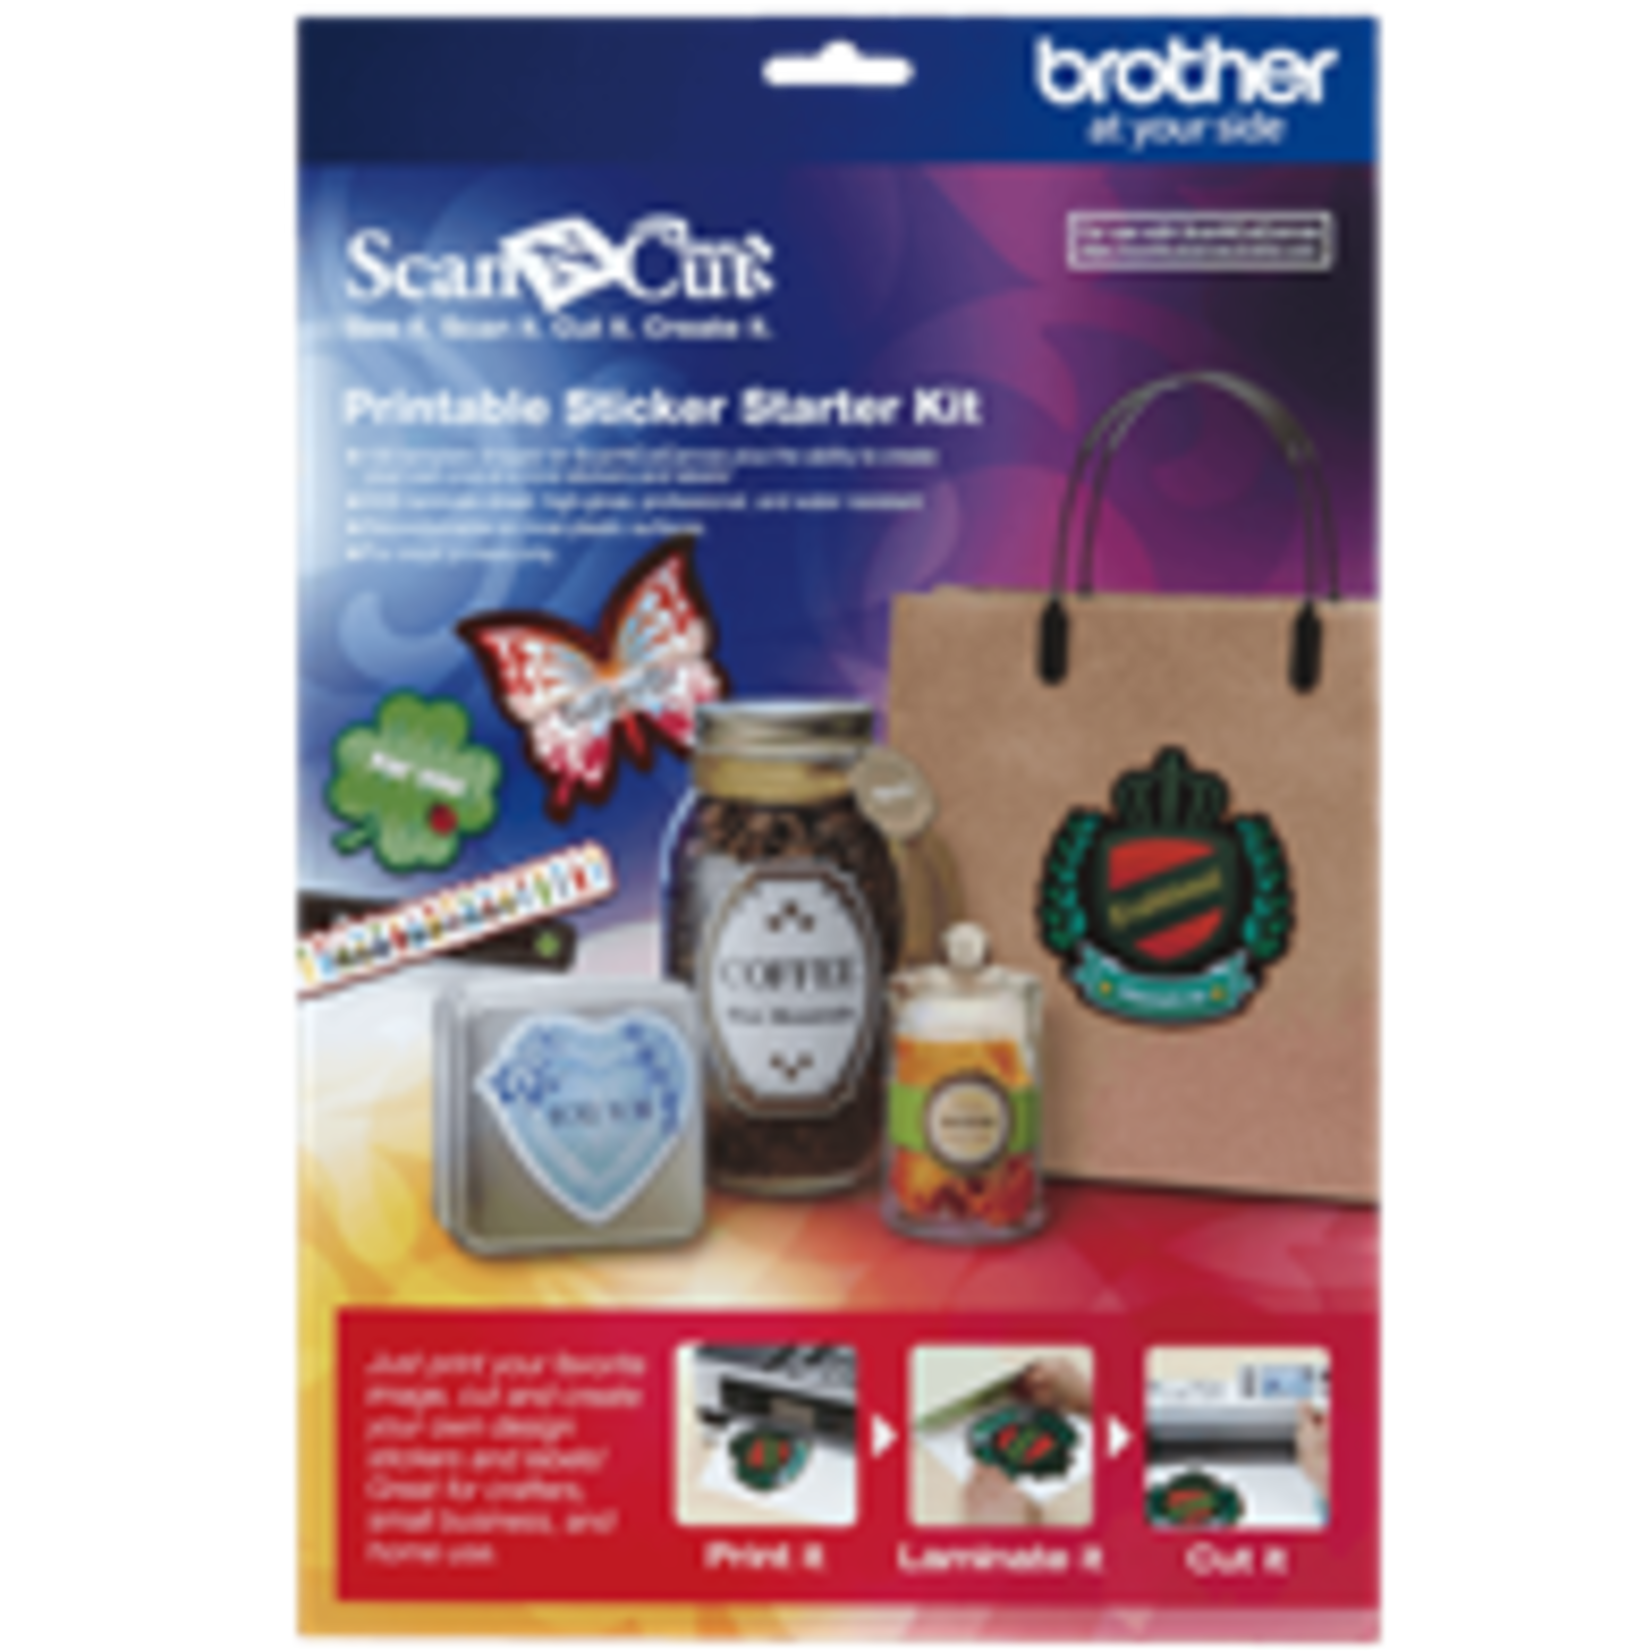 Brother BROTHER PRINTABLE STICKER STARTER KIT SCAN N CUT